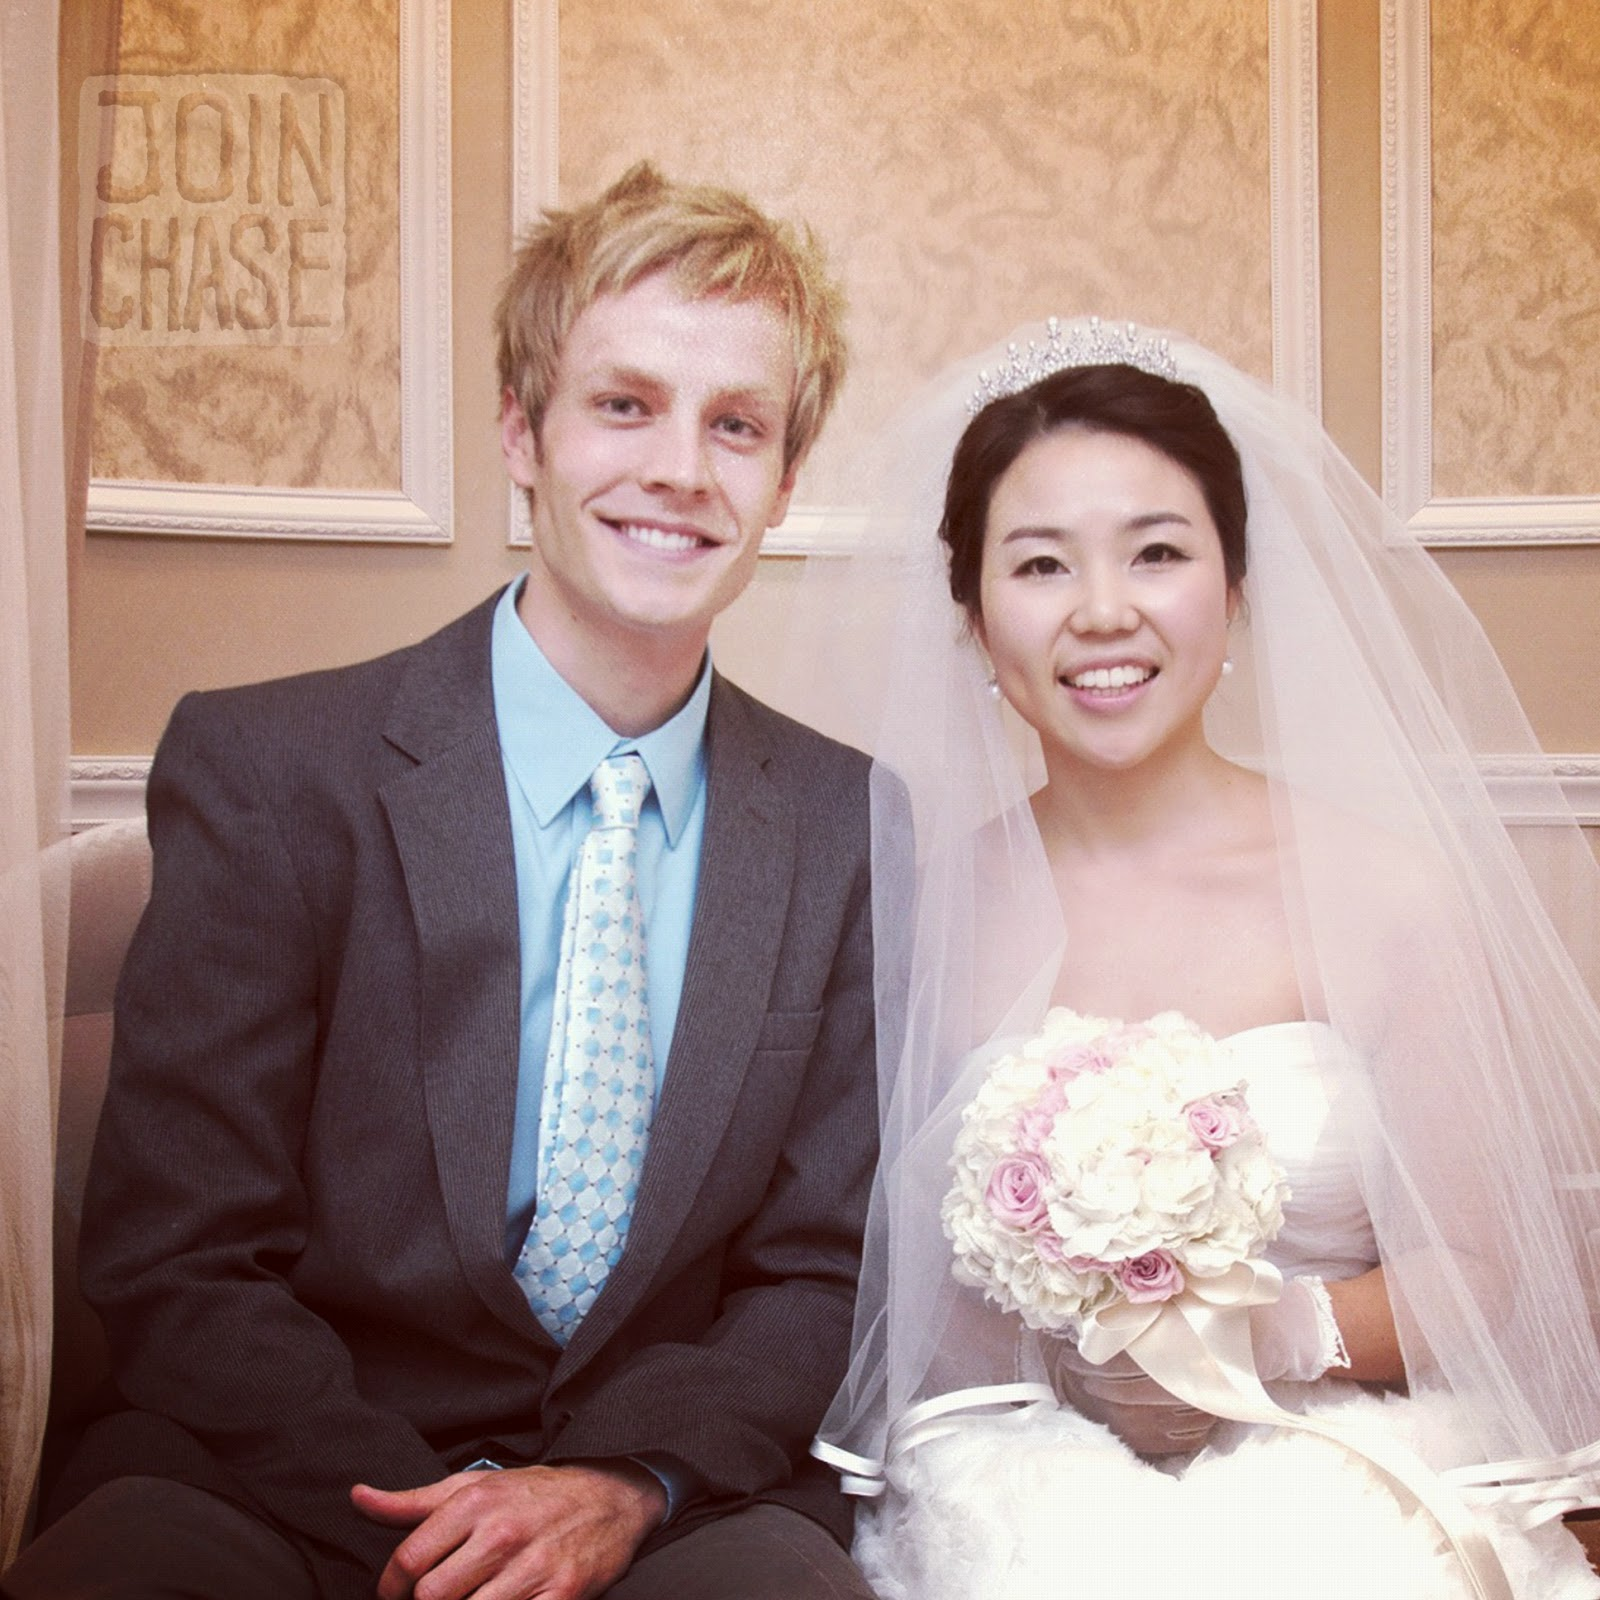 With the beautiful bride of a Korean wedding in Cheongju, South Korea.